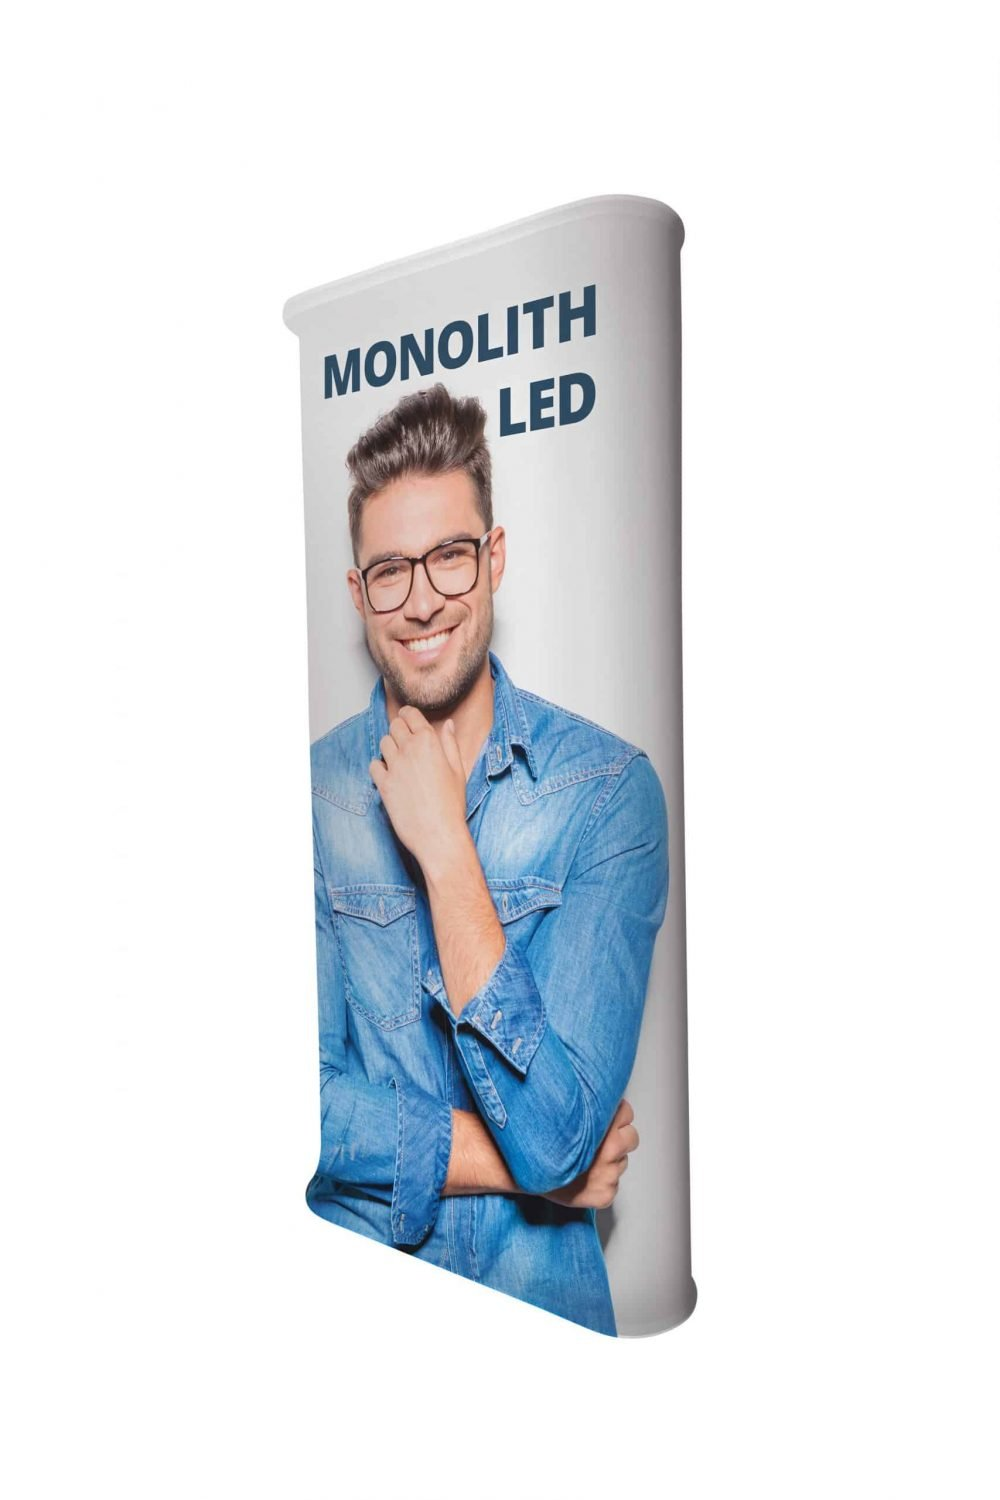 Formulate Monolith LED With Graphic